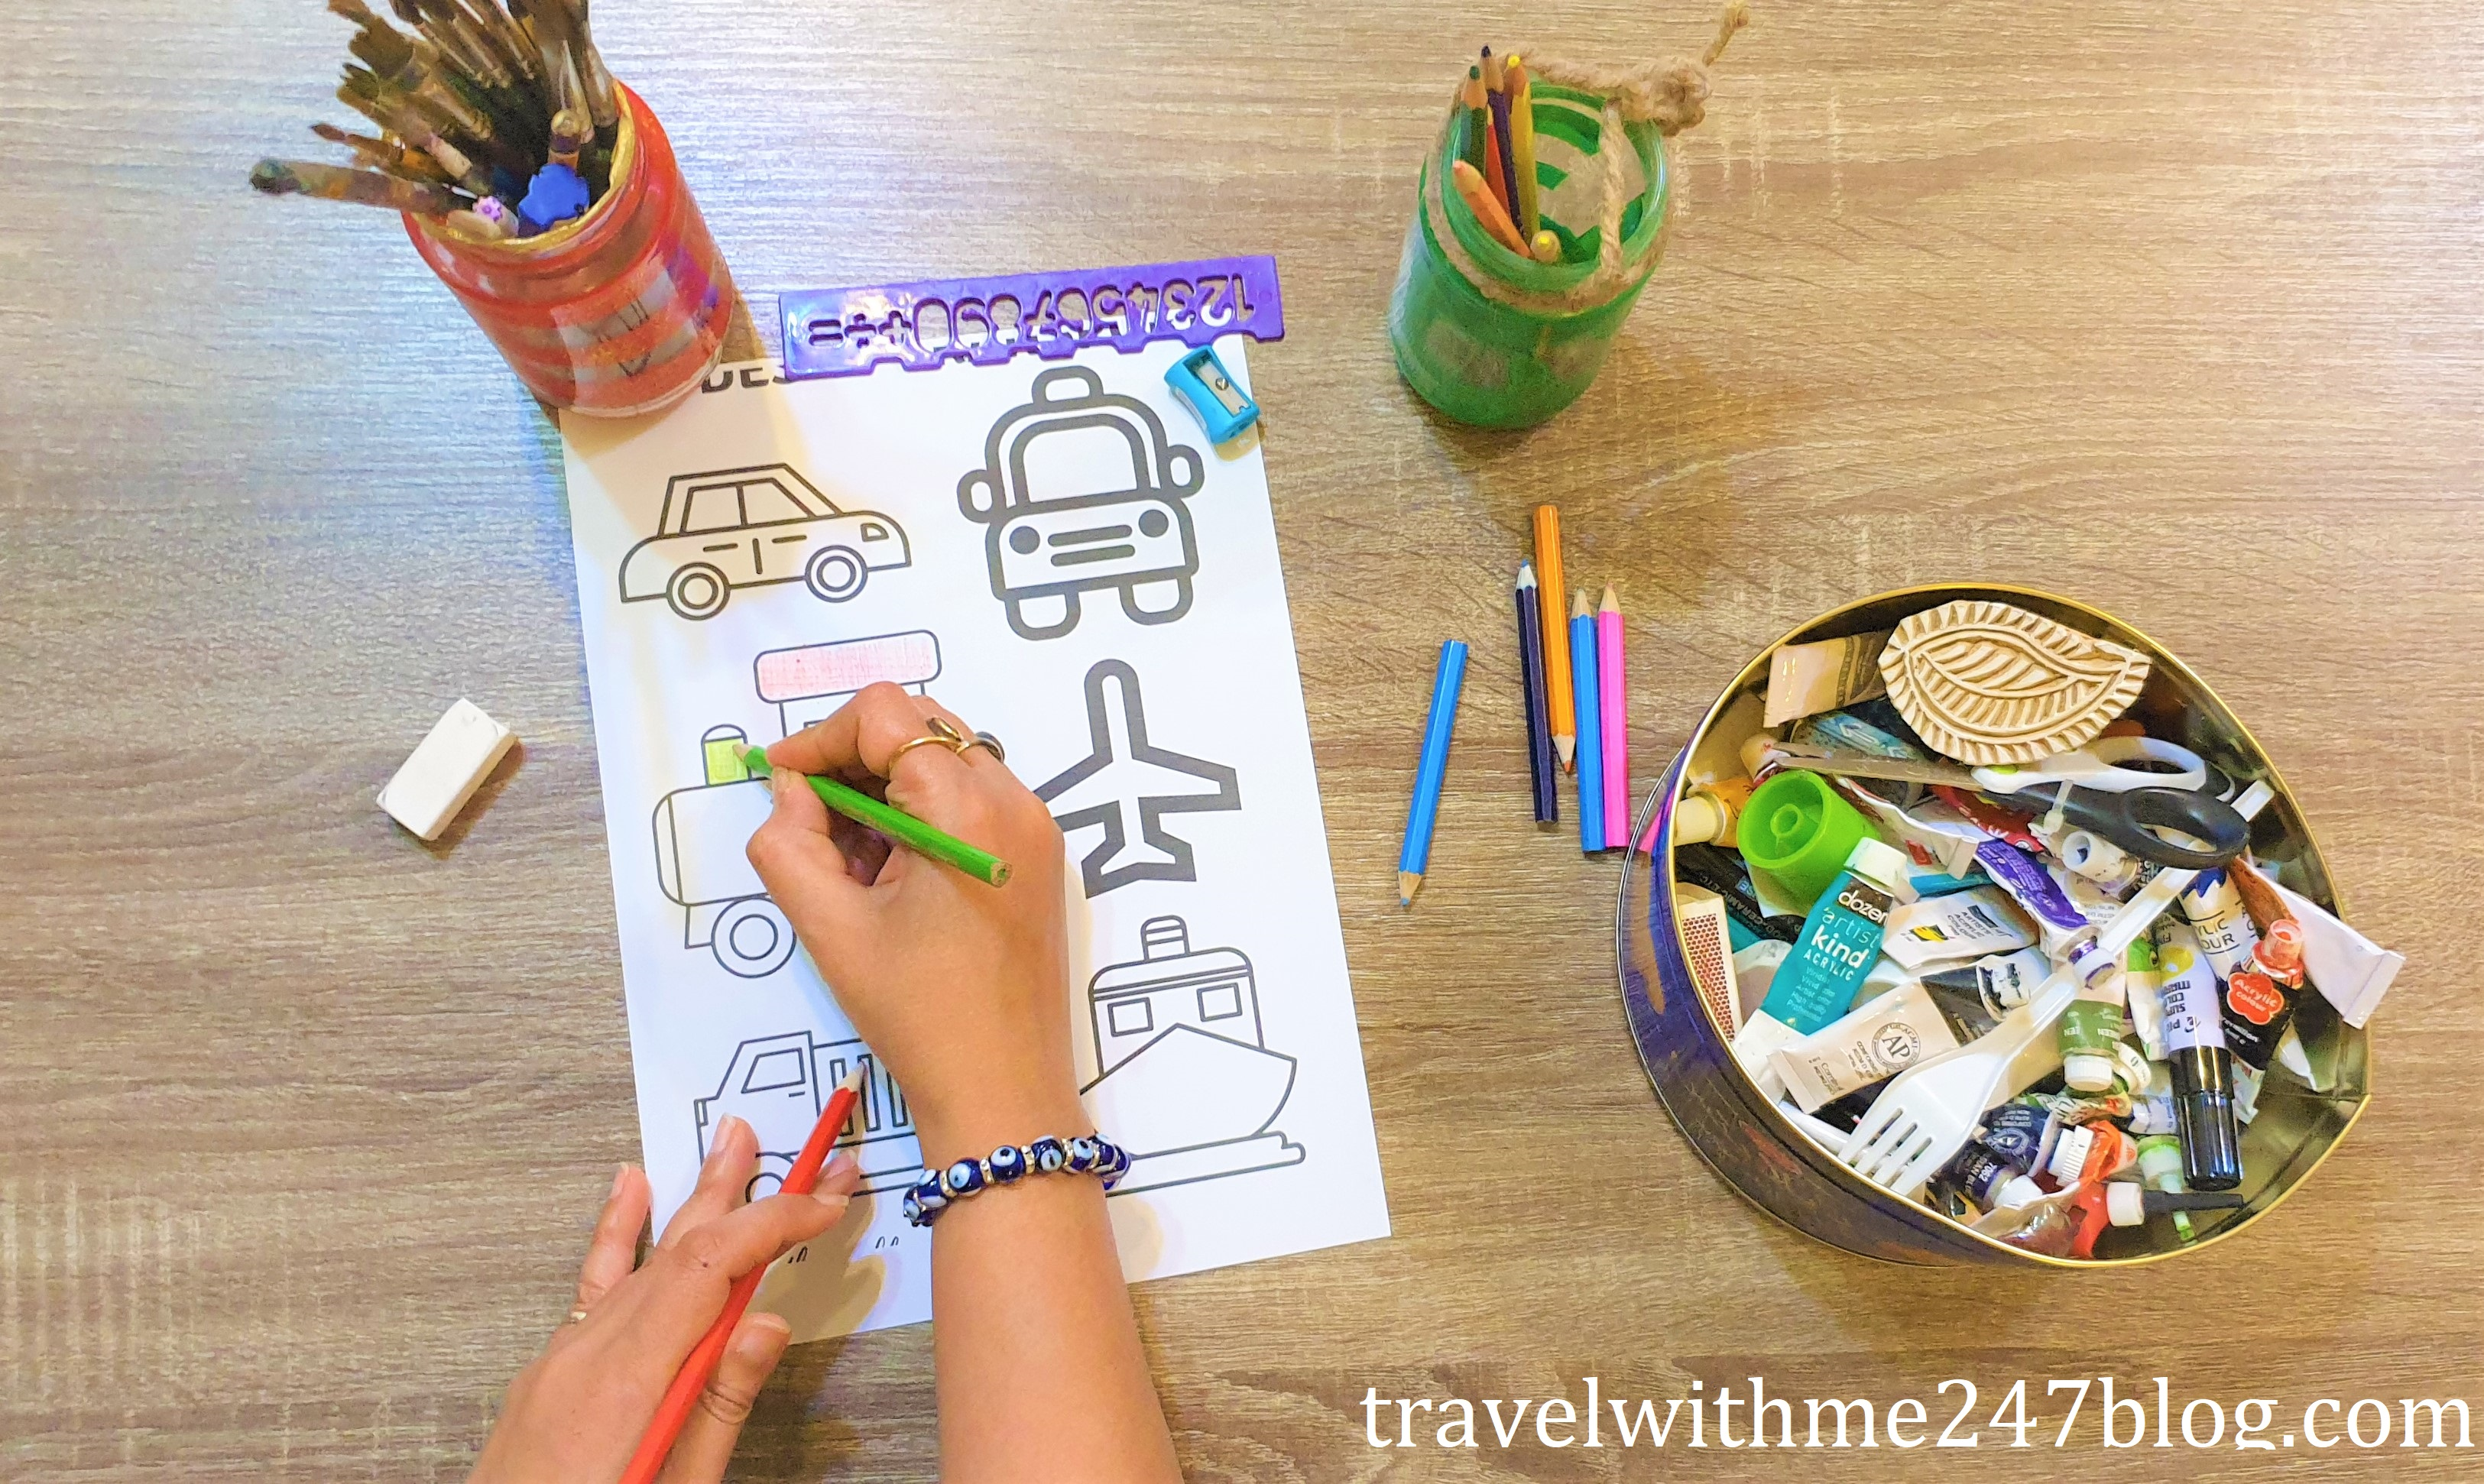 Free Online Coloring Pages - Color Your Travel Memories – Travel With Me 24  X 7